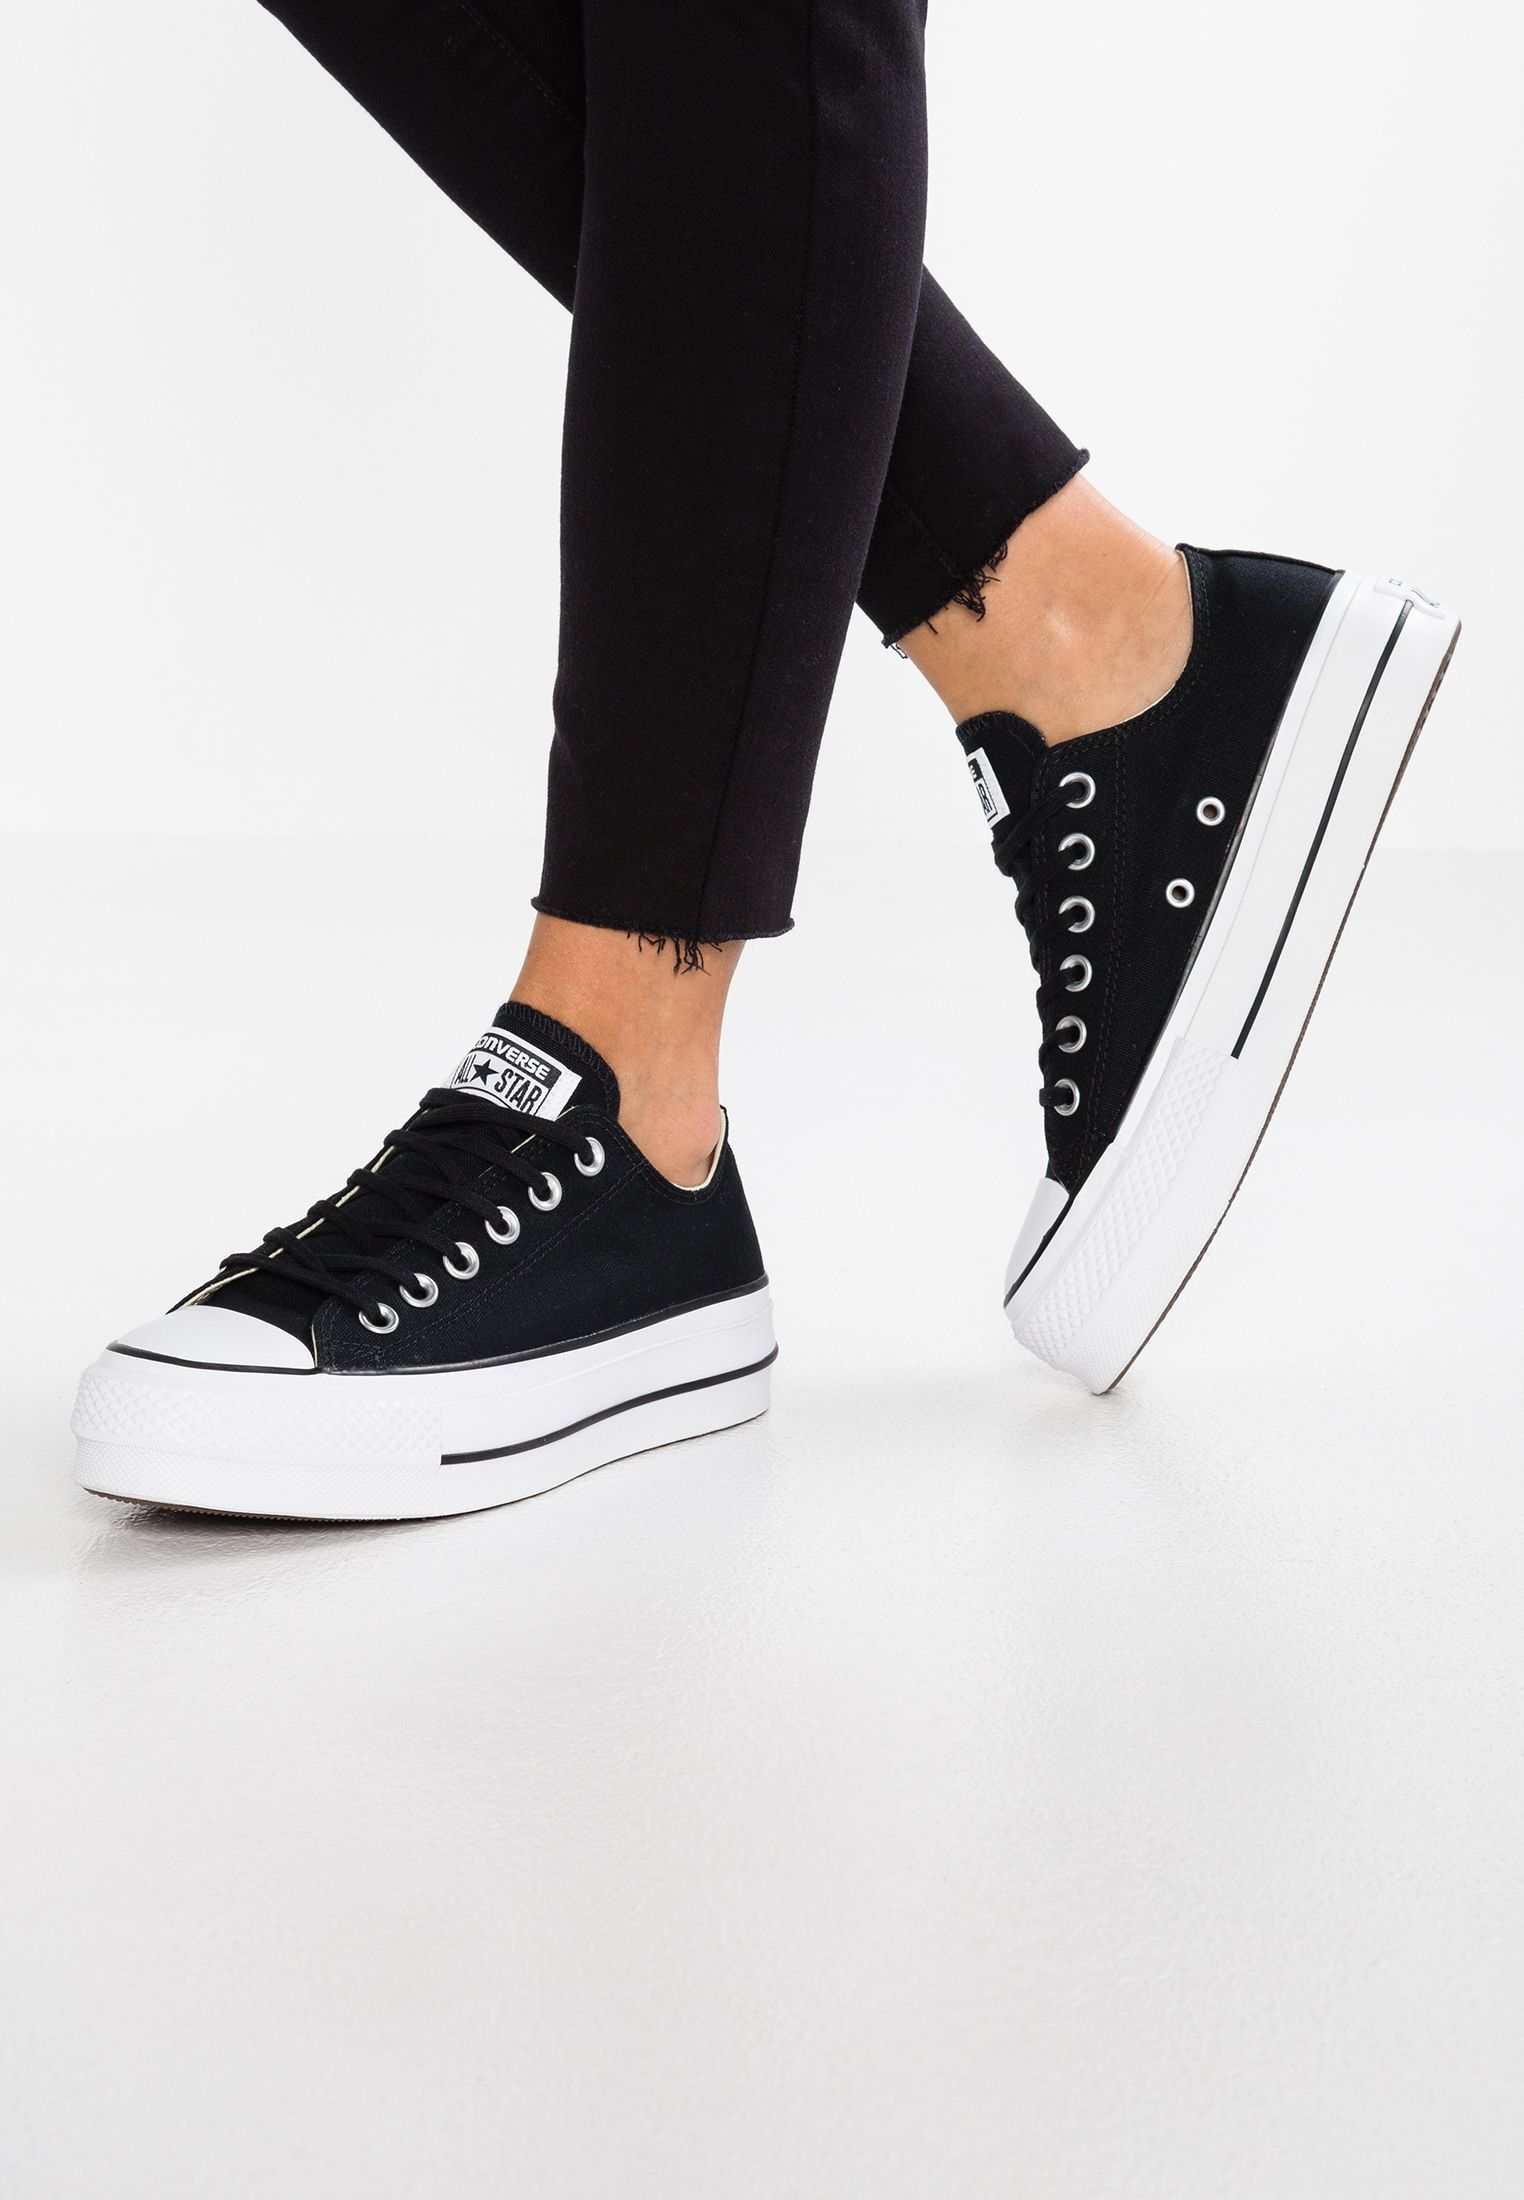 converse all star lift hi platform femme